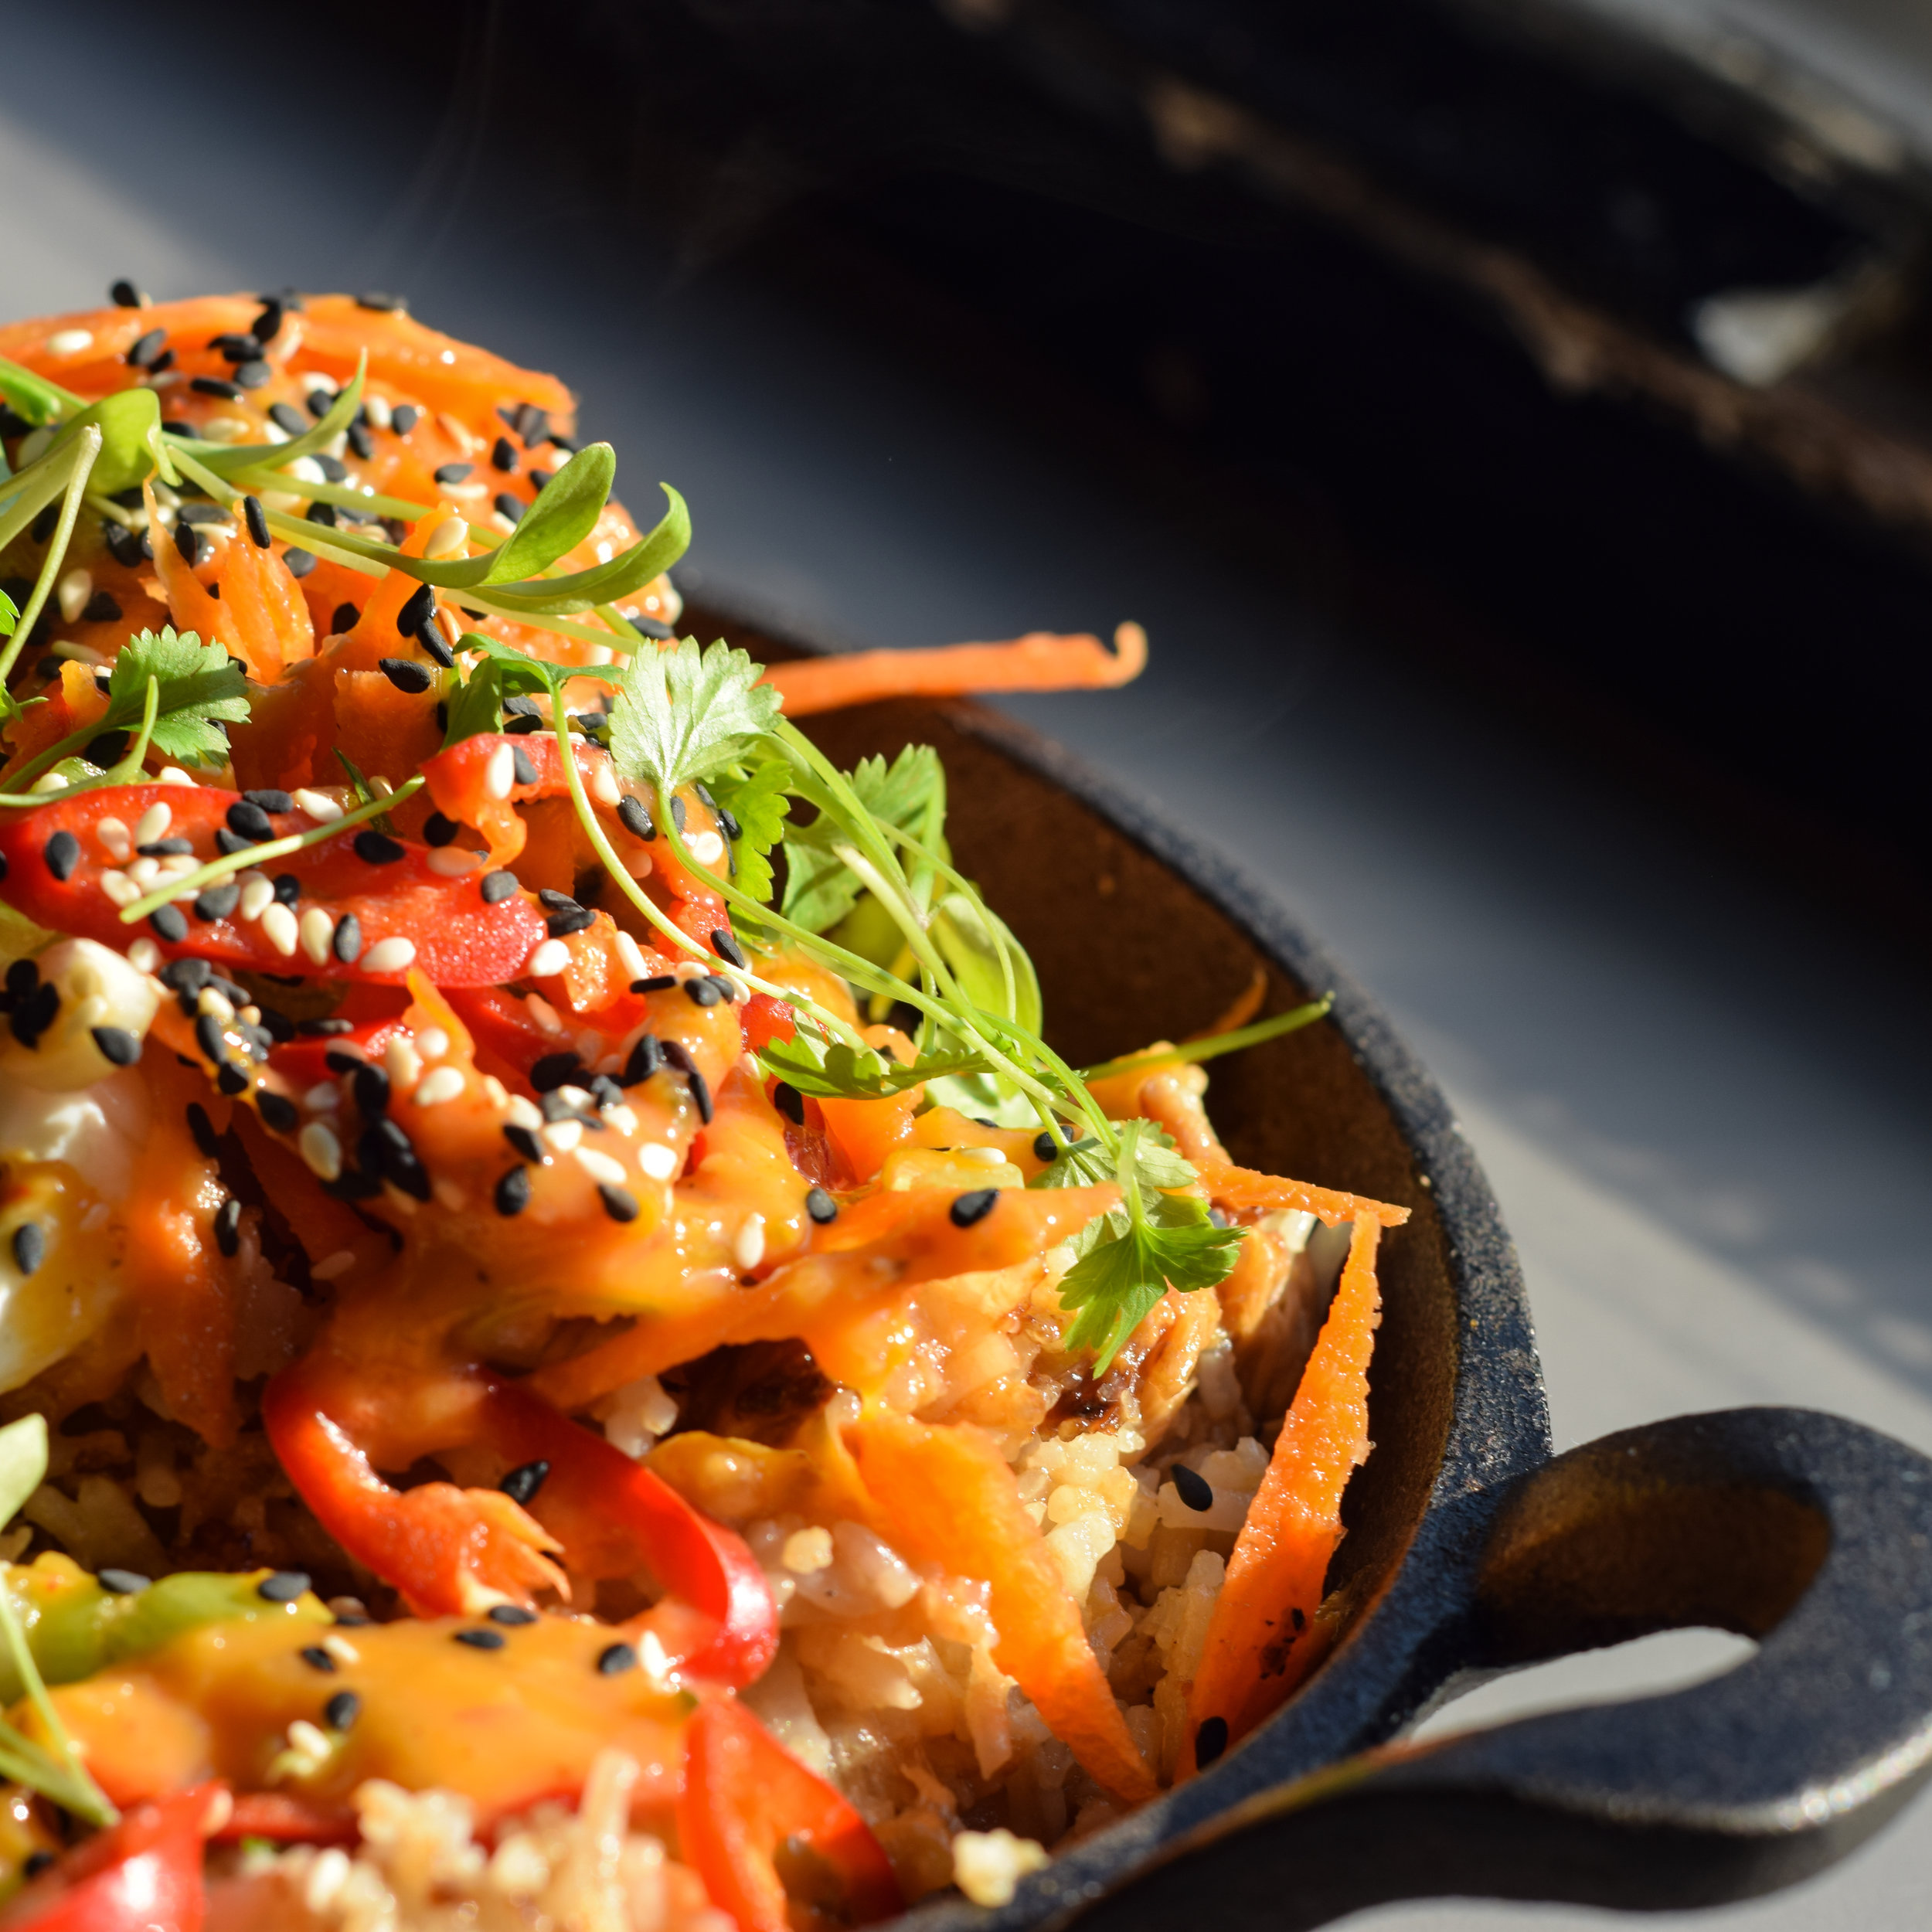 Pork Fried rice in sweet and sour sauce with poached egg.jpg